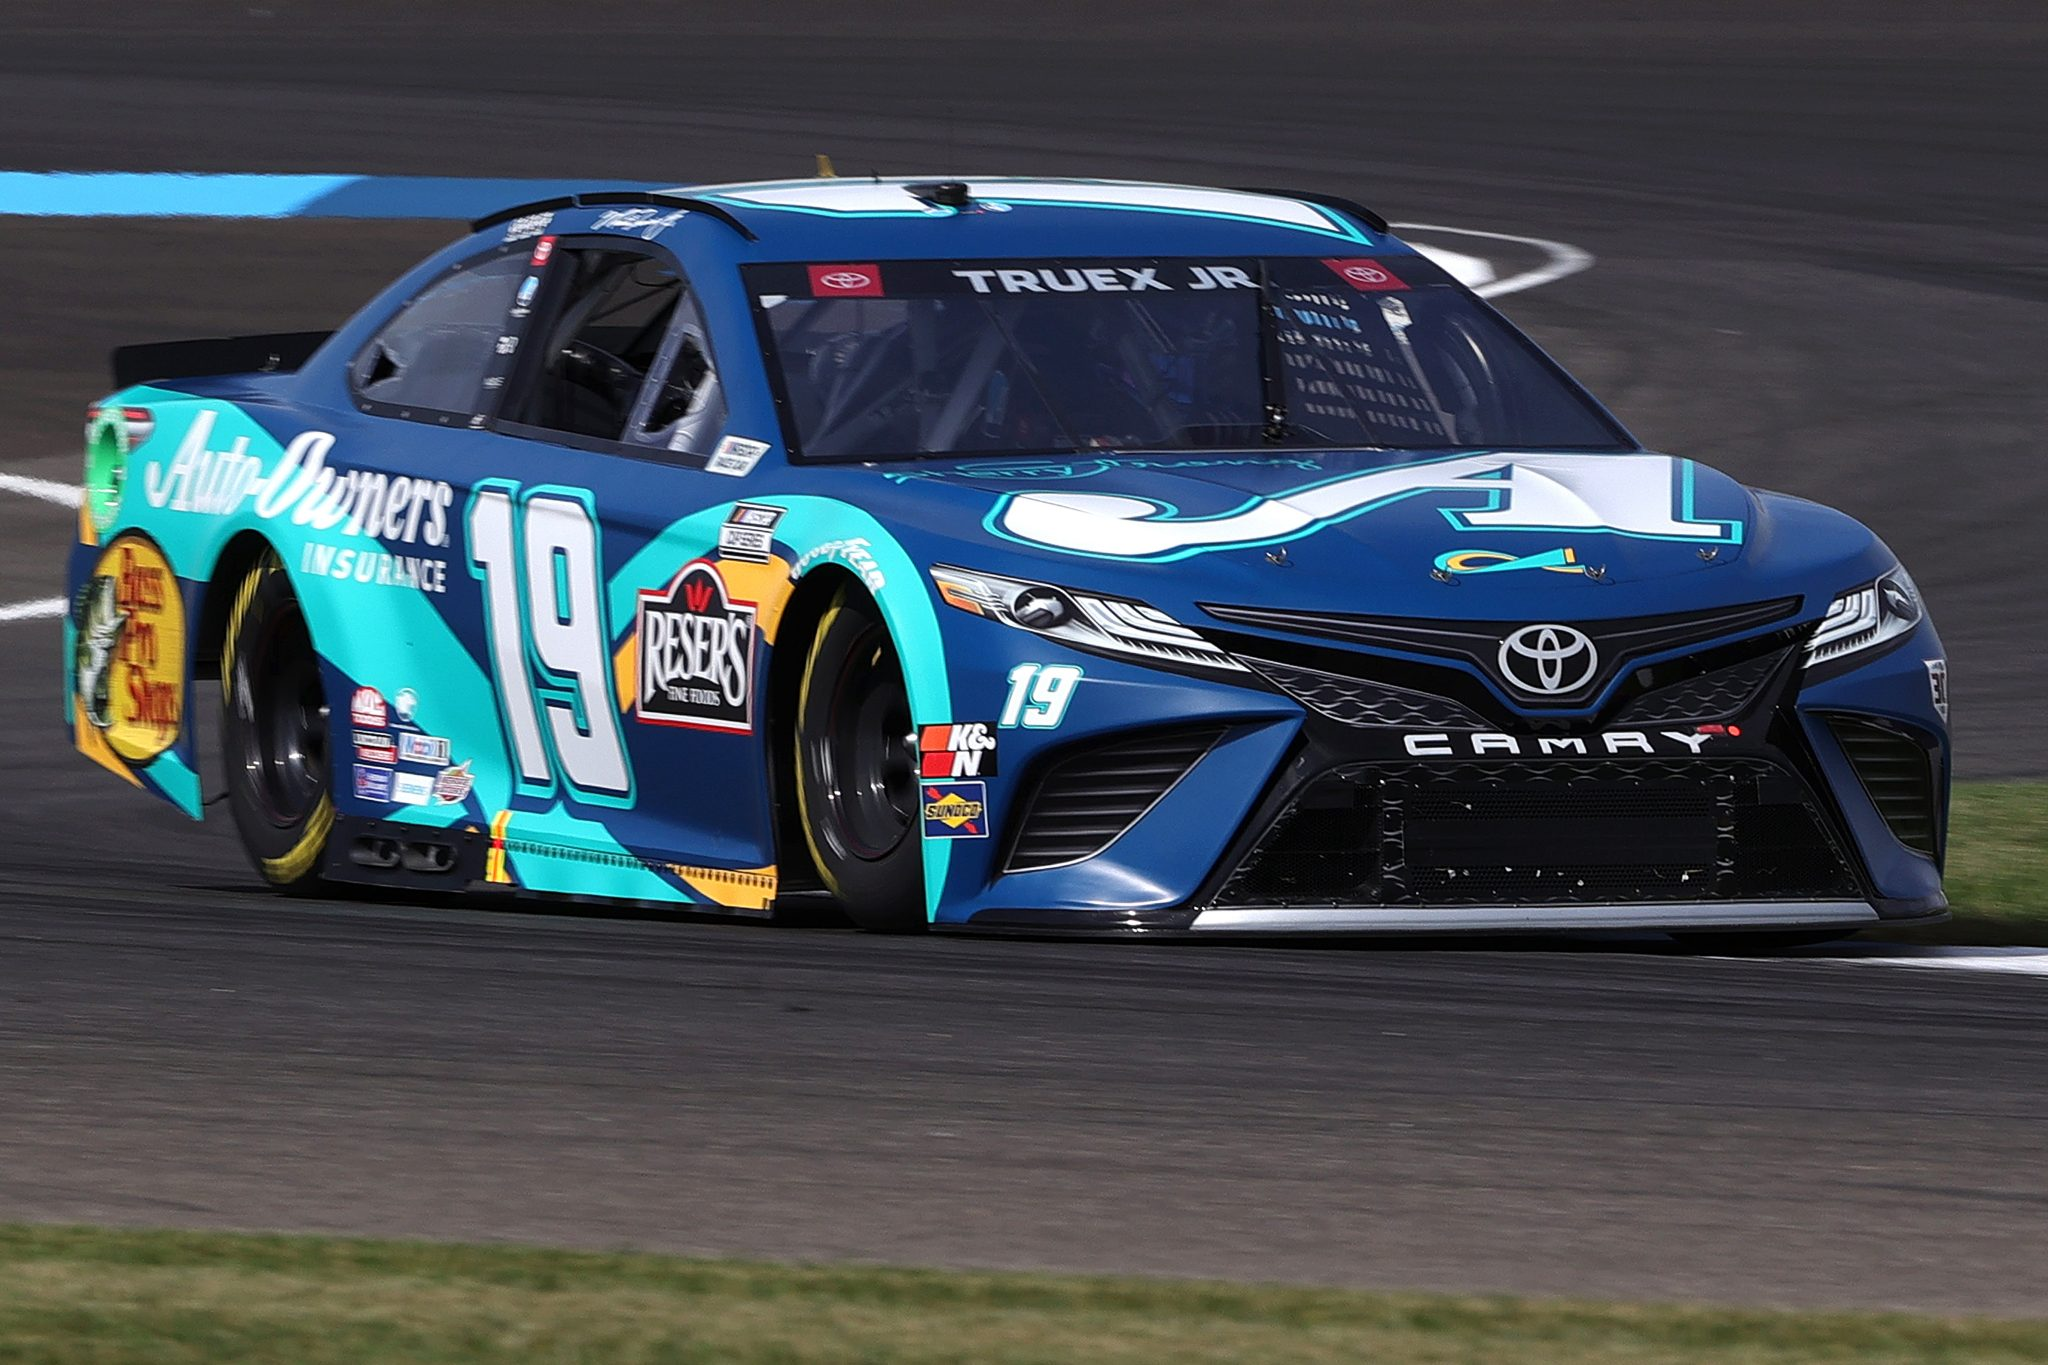 INDIANAPOLIS, INDIANA - AUGUST 14: Martin Truex Jr., driver of the #19 Auto-Owners Insurance/MTJF Toyota, drives during practice for the NASCAR Cup Series Verizon 200 at the Brickyard at Indianapolis Motor Speedway on August 14, 2021 in Indianapolis, Indiana. (Photo by Stacy Revere/Getty Images) | Getty Images